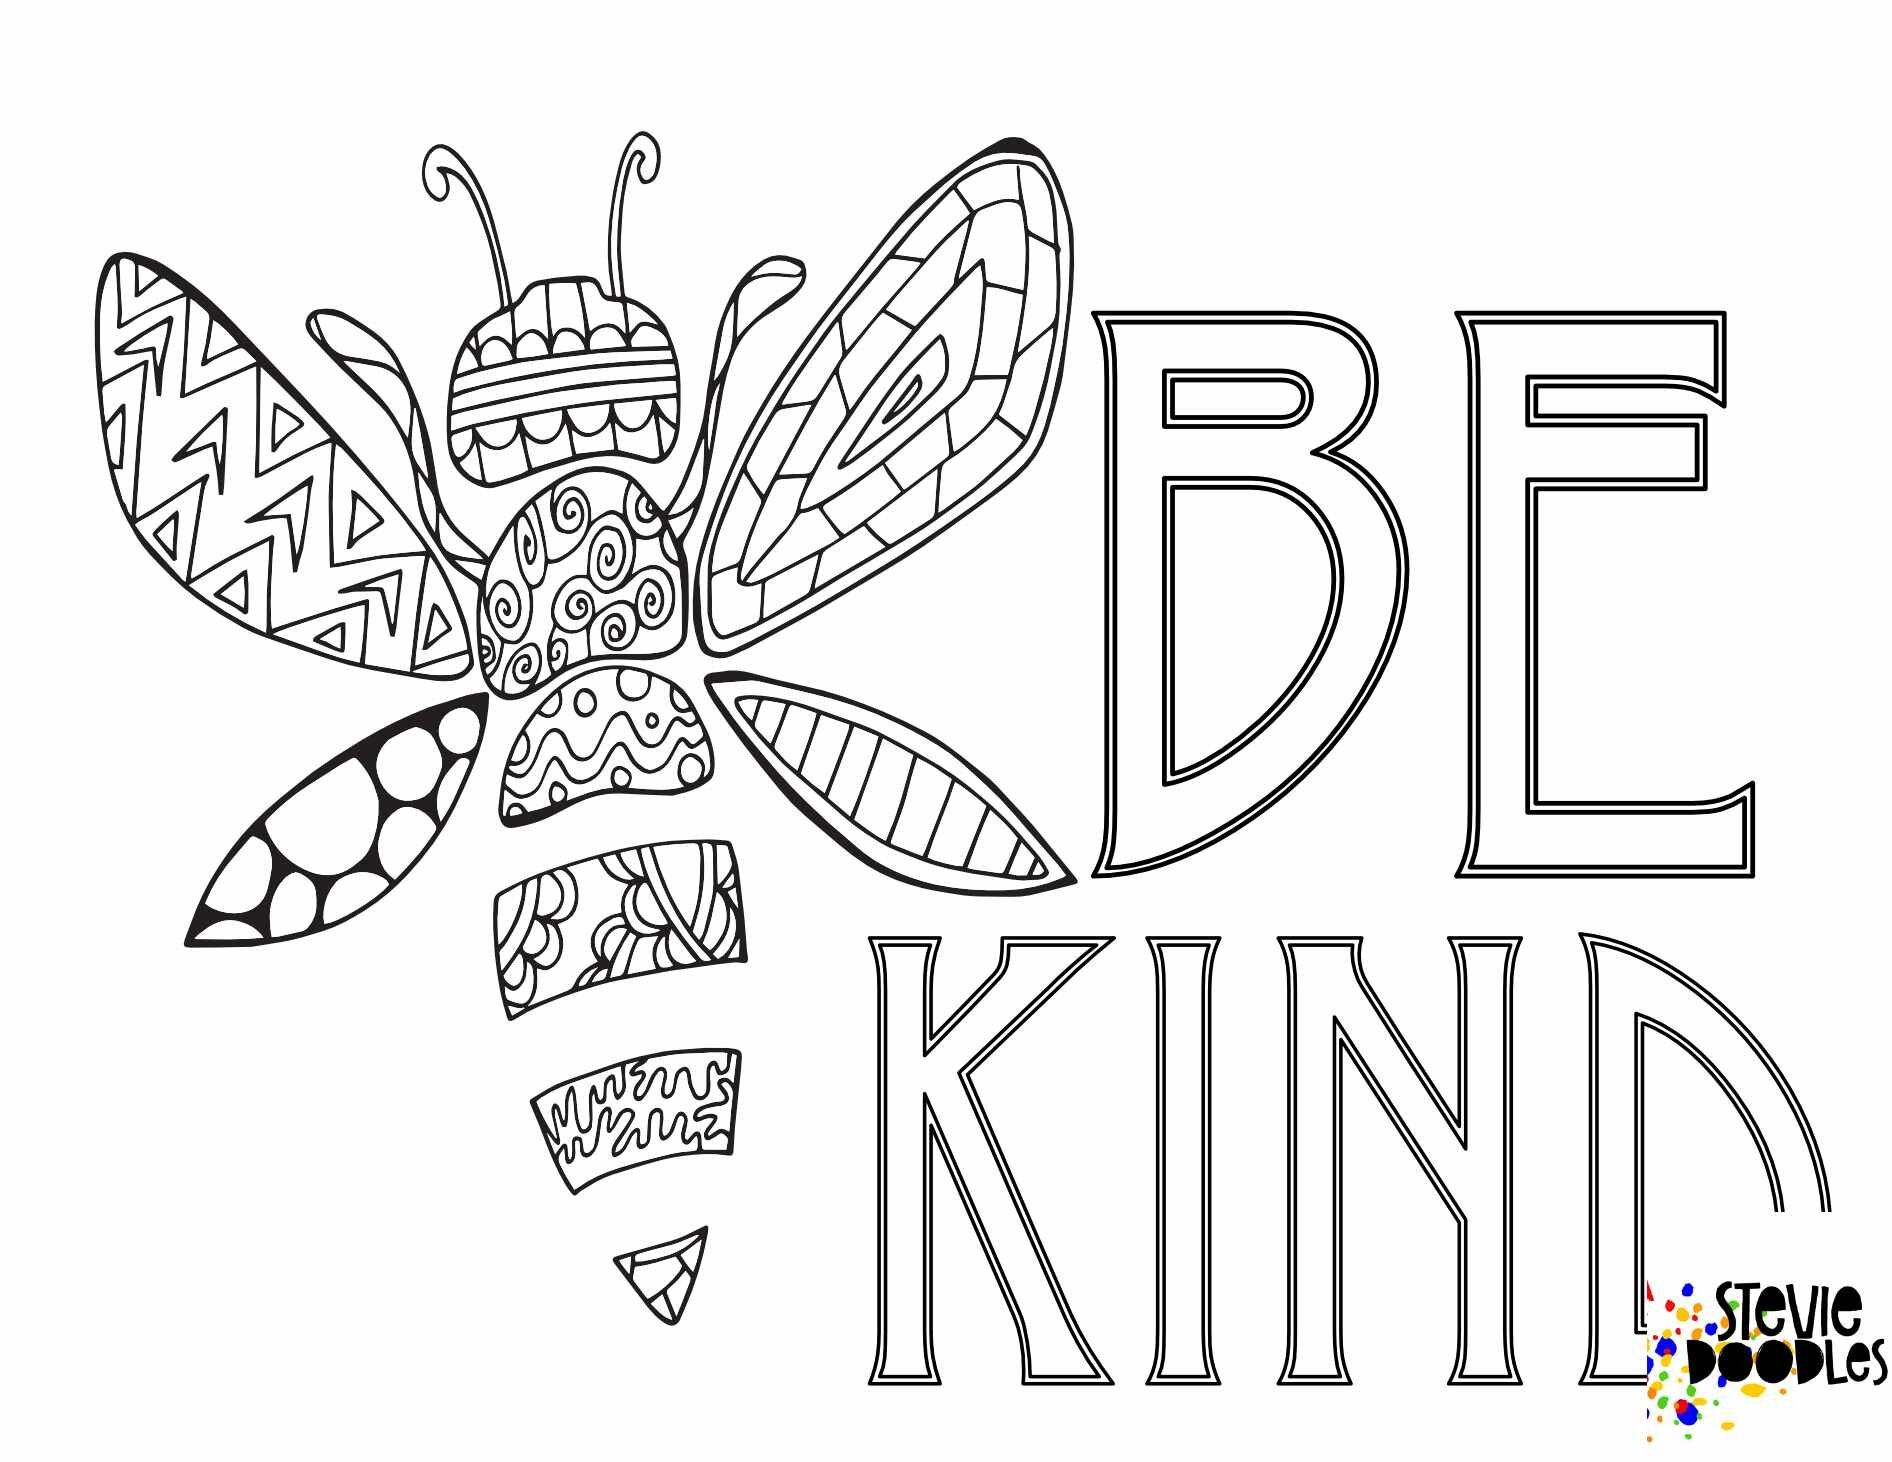 Amazing Be Kind Coloring Page I Can Be Printable Have Courage And Be Kind Colo Free Printable Coloring Pages Coloring For Kids Free Printable Coloring Pages